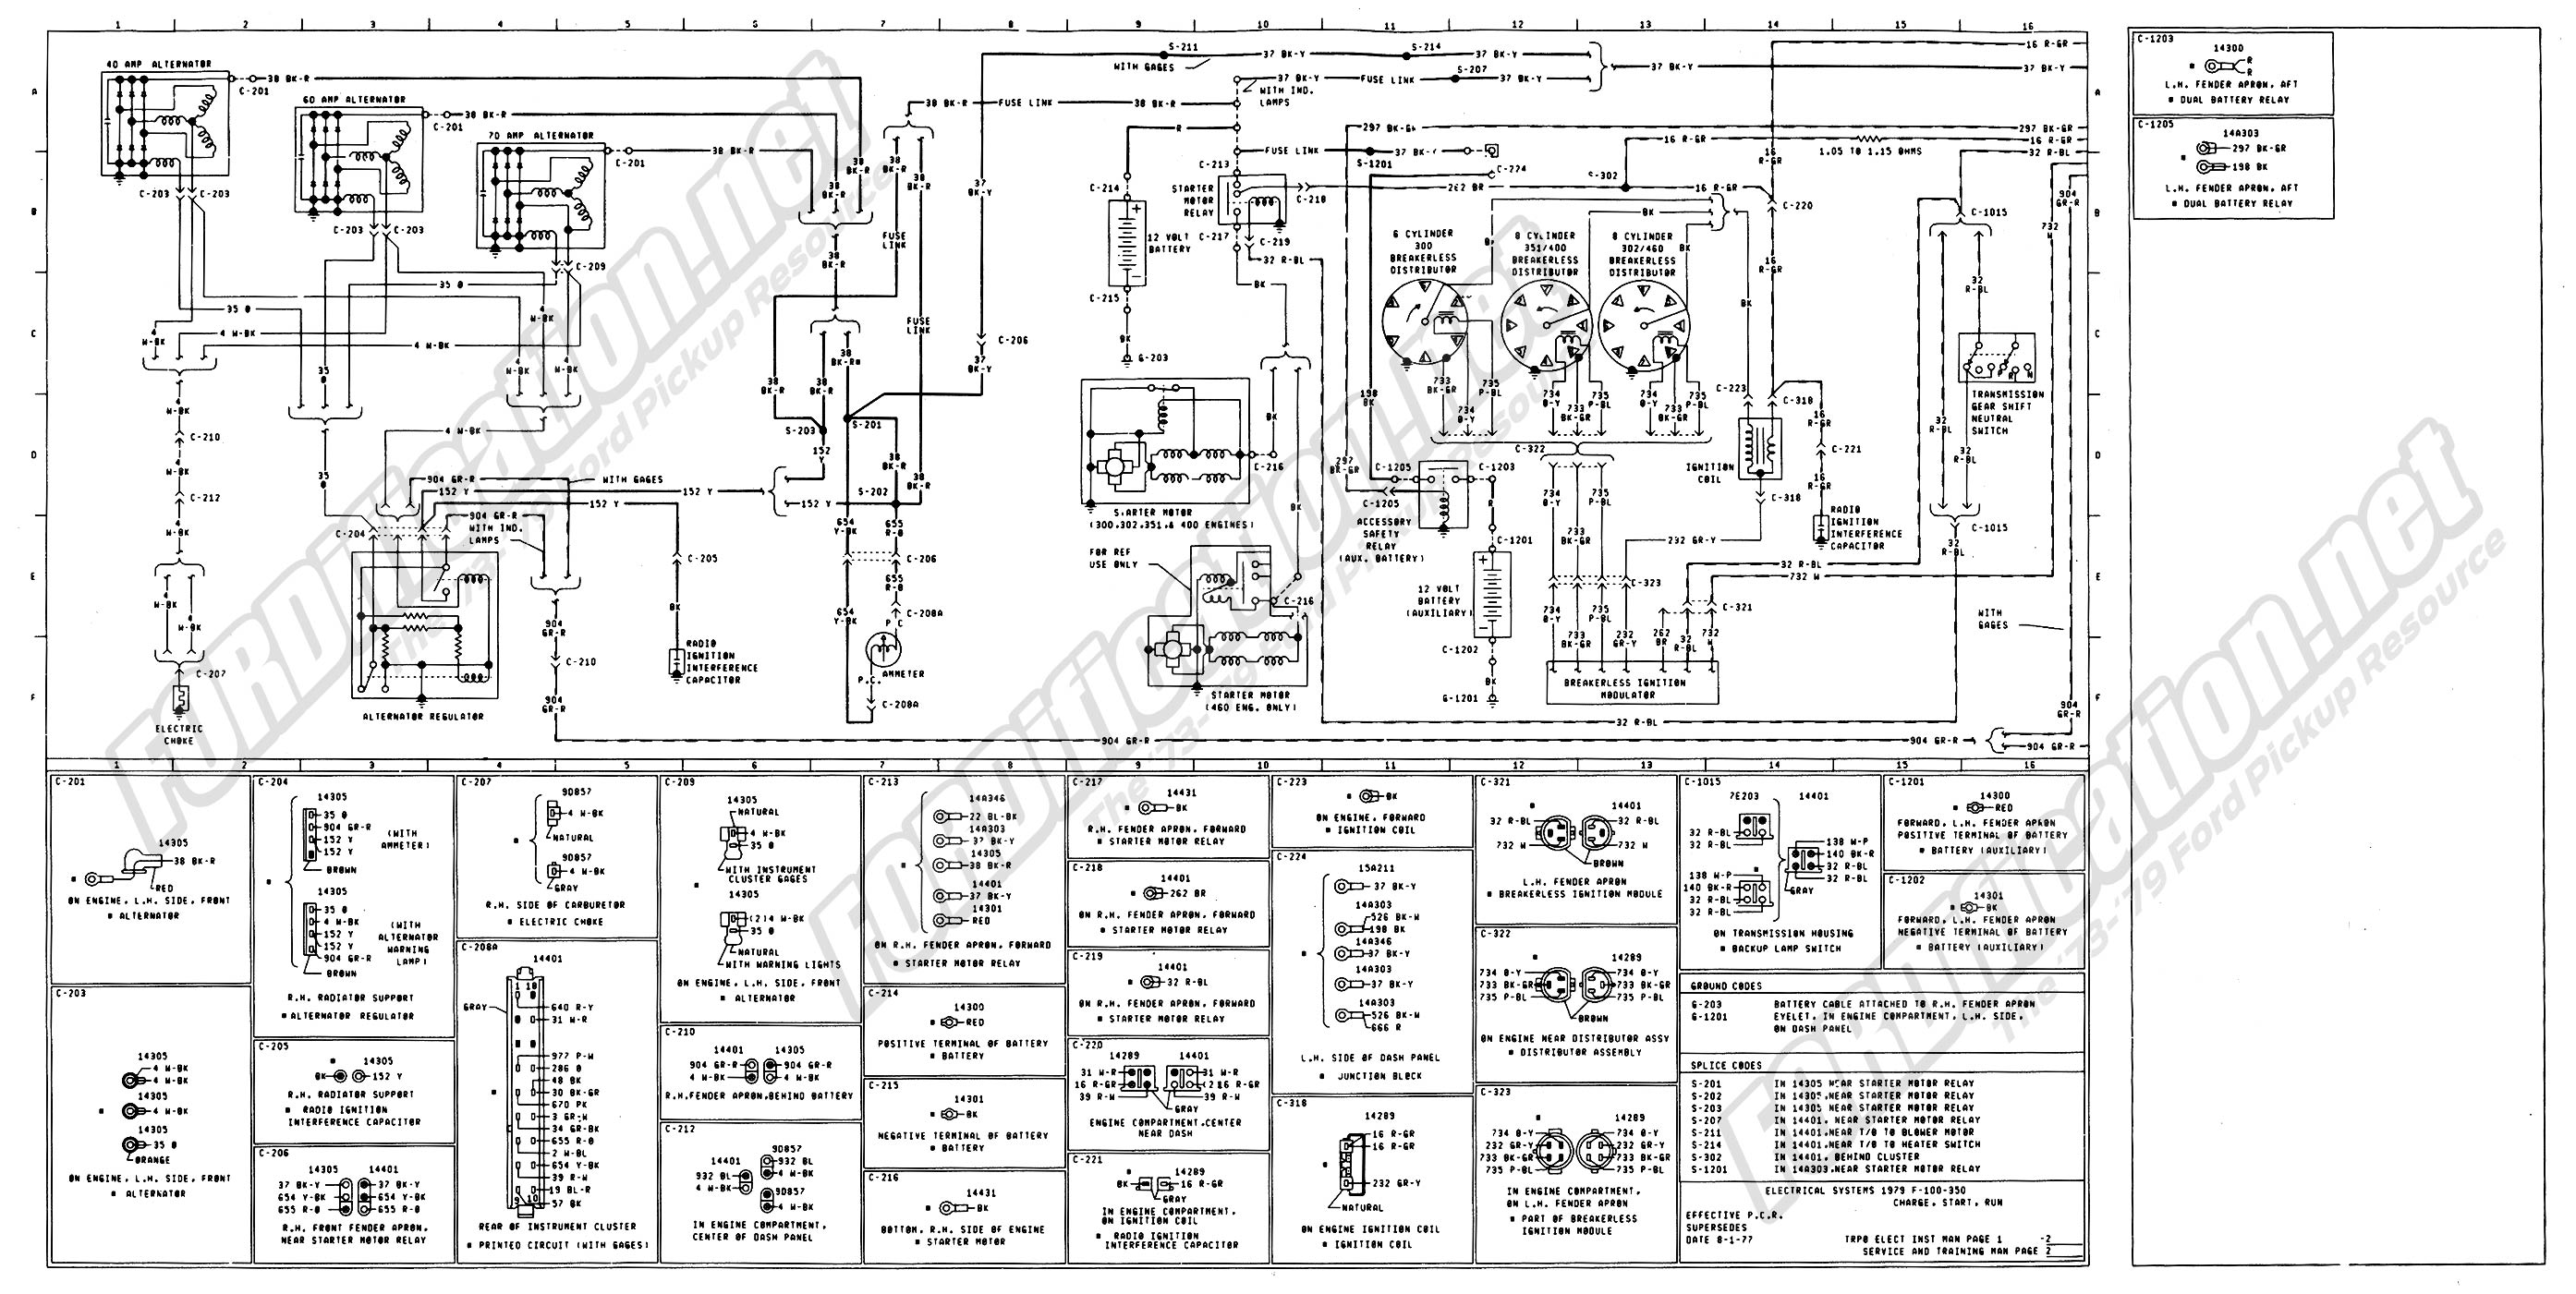 wiring_79master_2of9 1973 1979 ford truck wiring diagrams & schematics fordification net 1999 ford f350 wiring diagram at cos-gaming.co